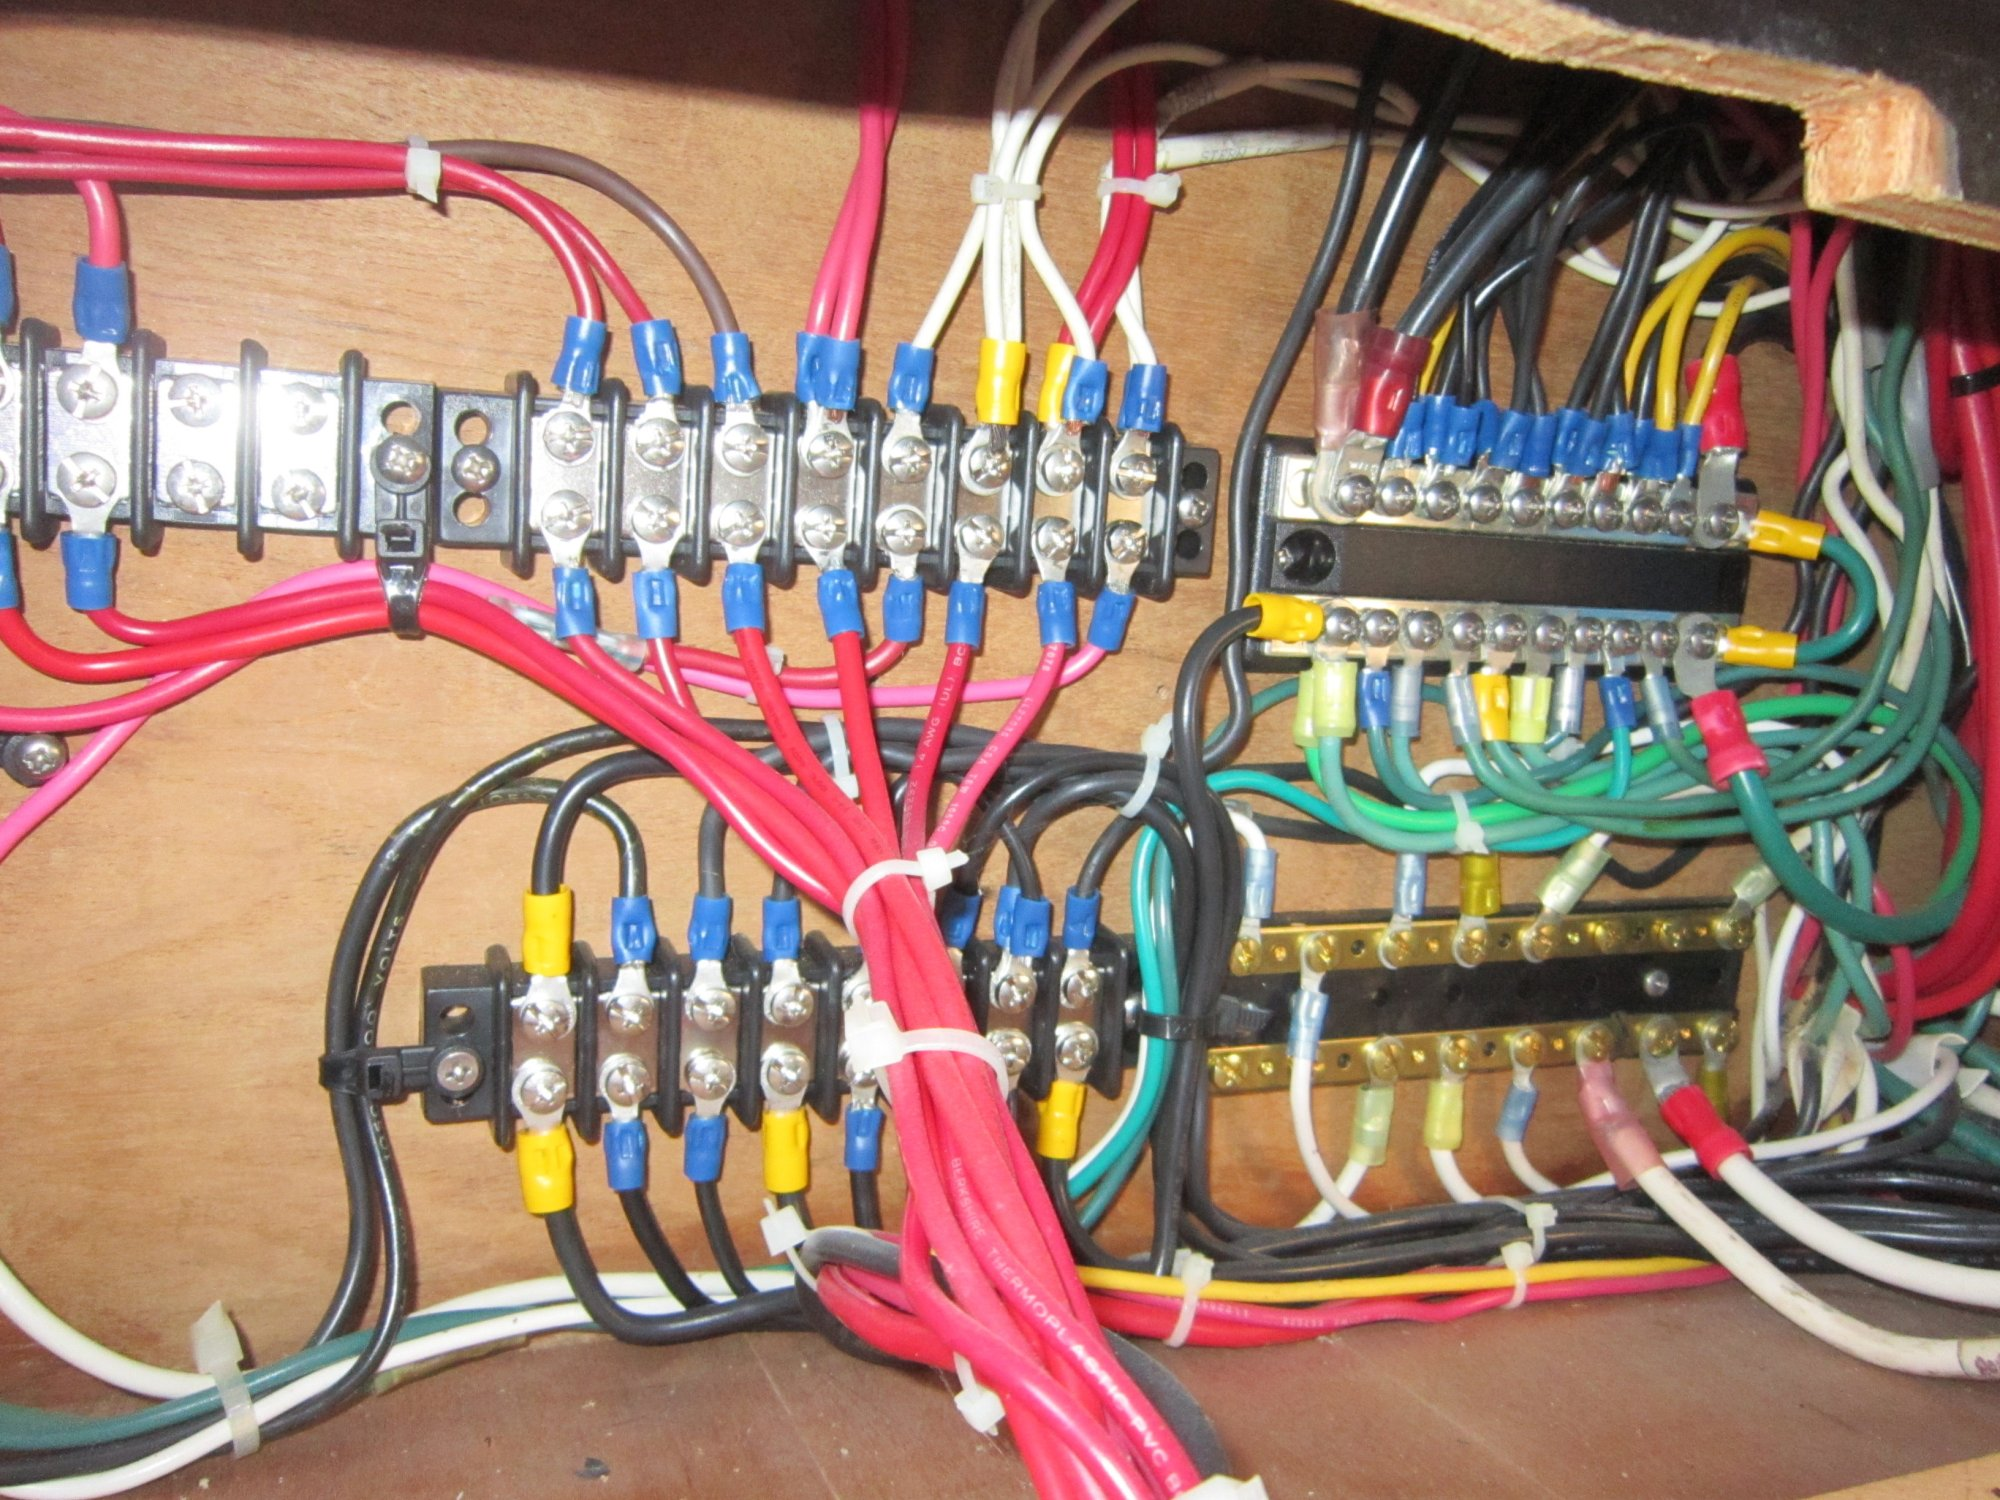 hight resolution of marine wiring supplies my wiring diagram boat wiring supplies uk